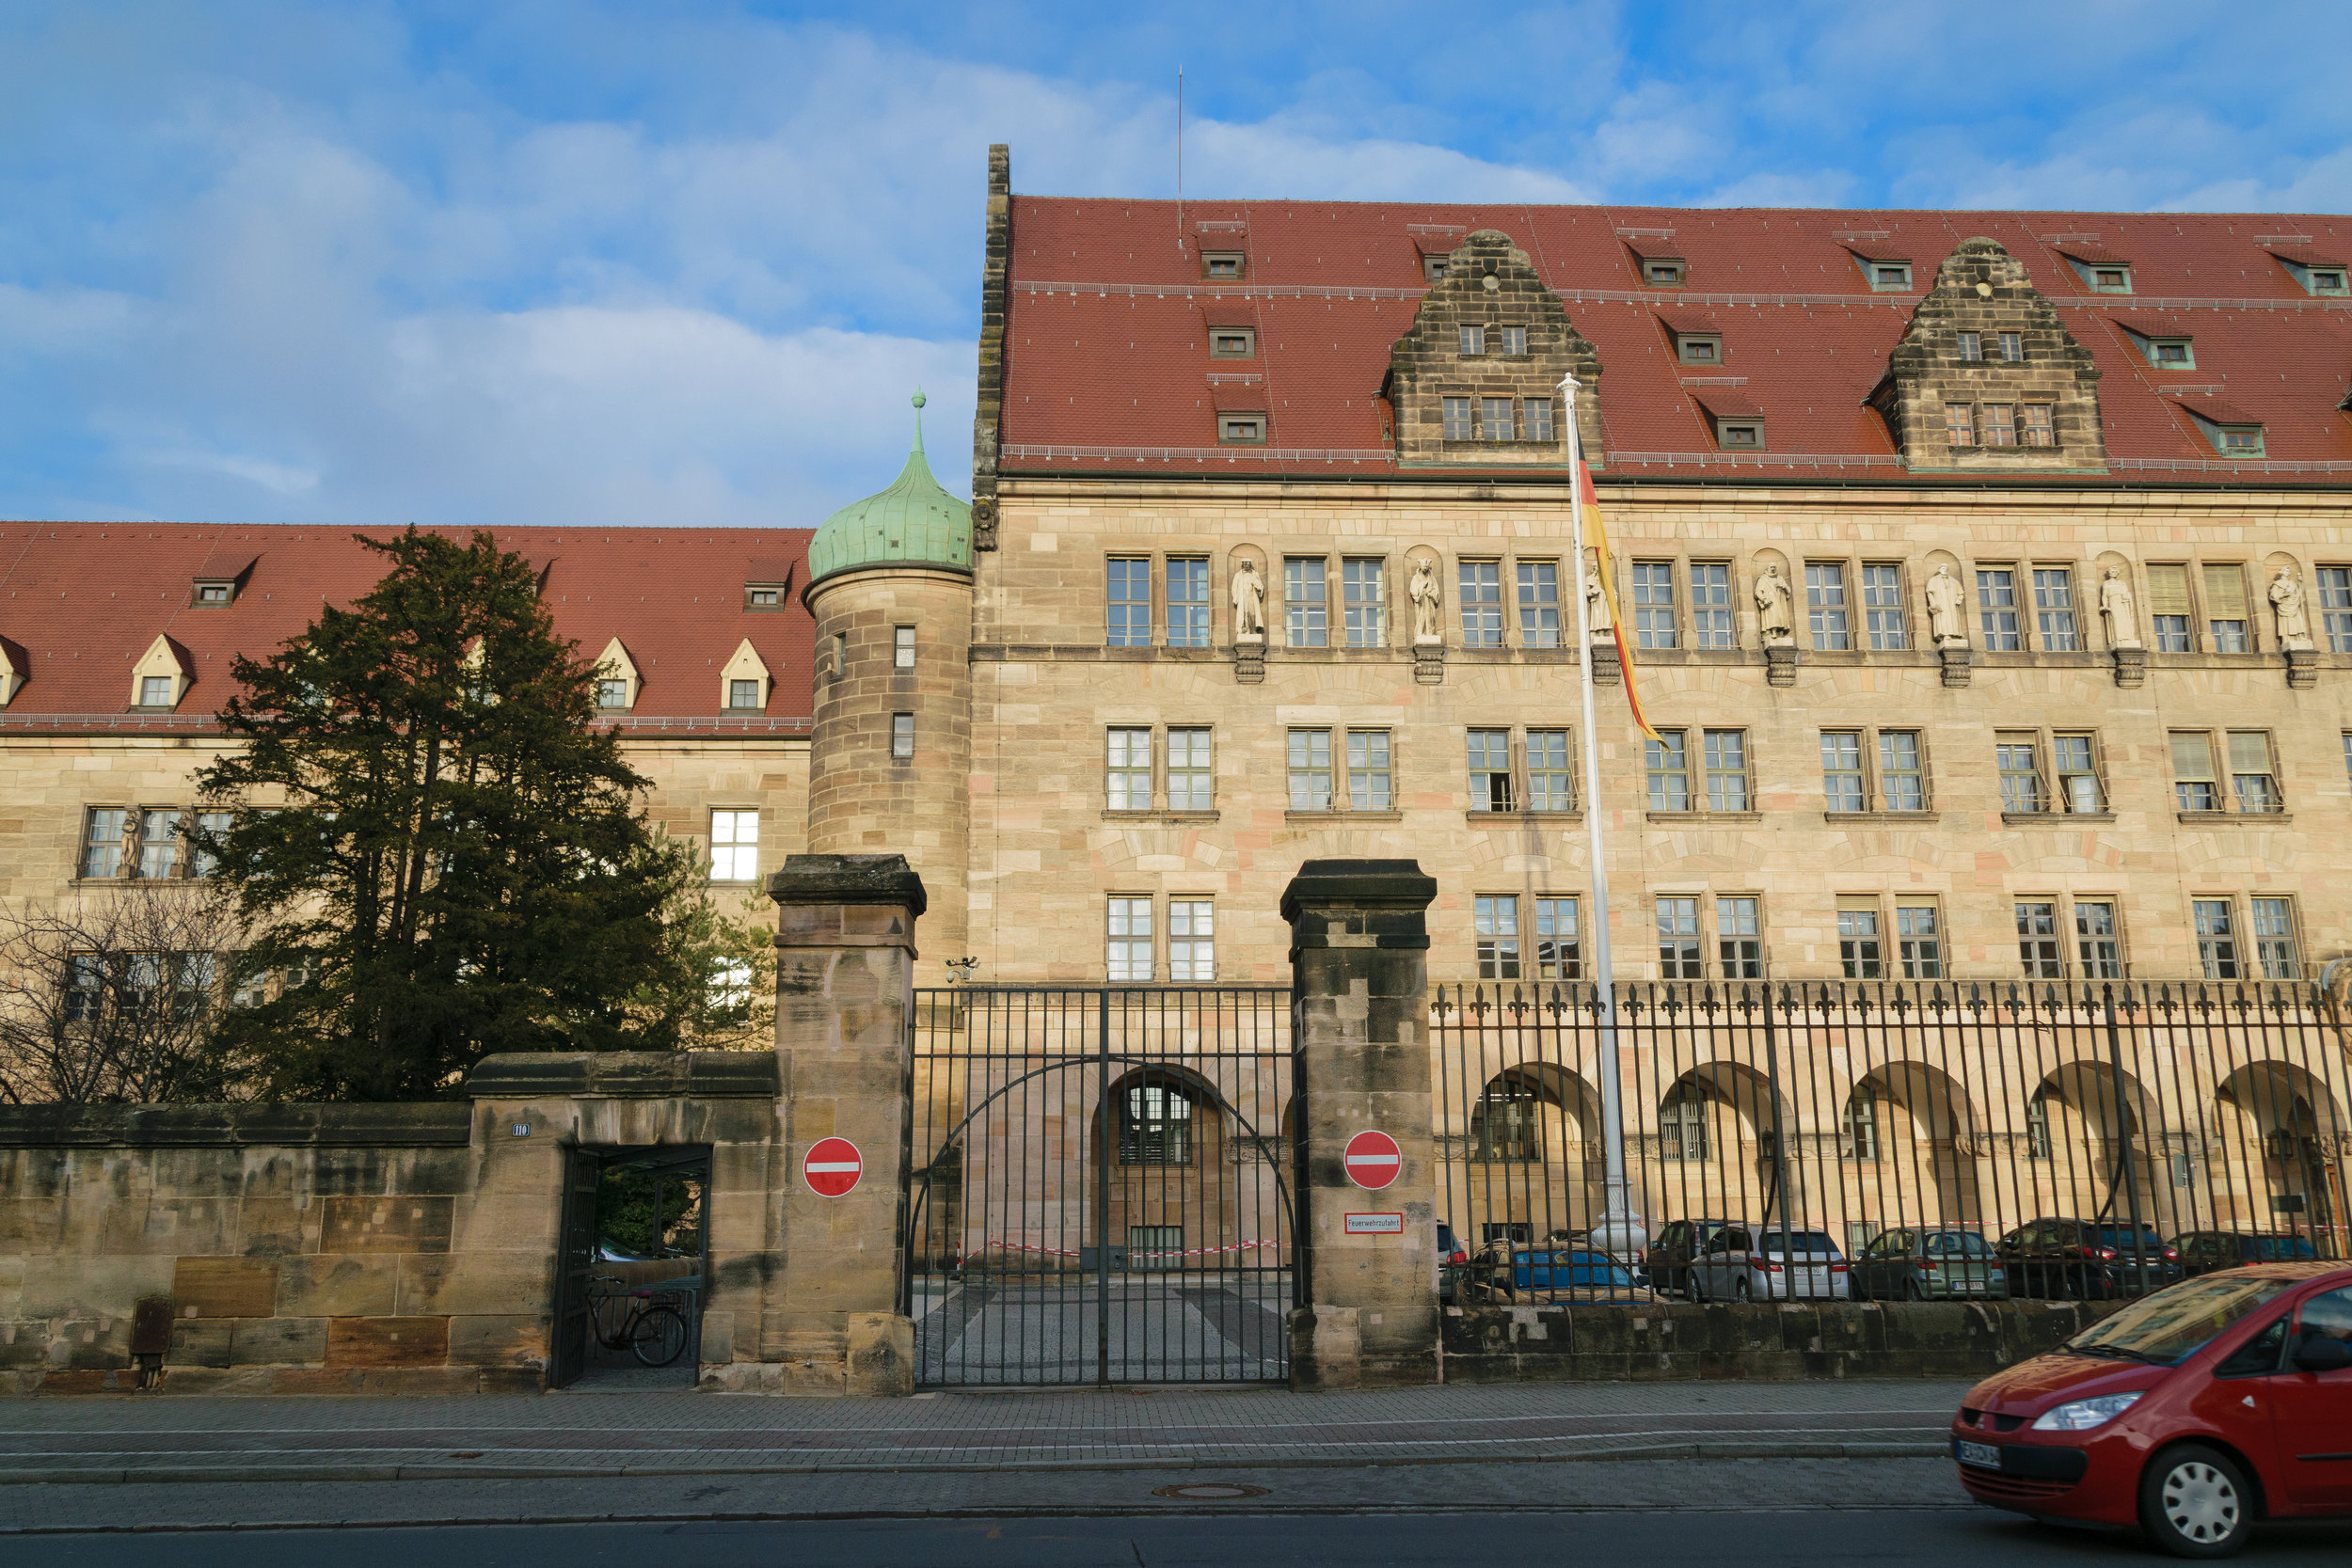 the building with courtroom 600 where the tribunals took place